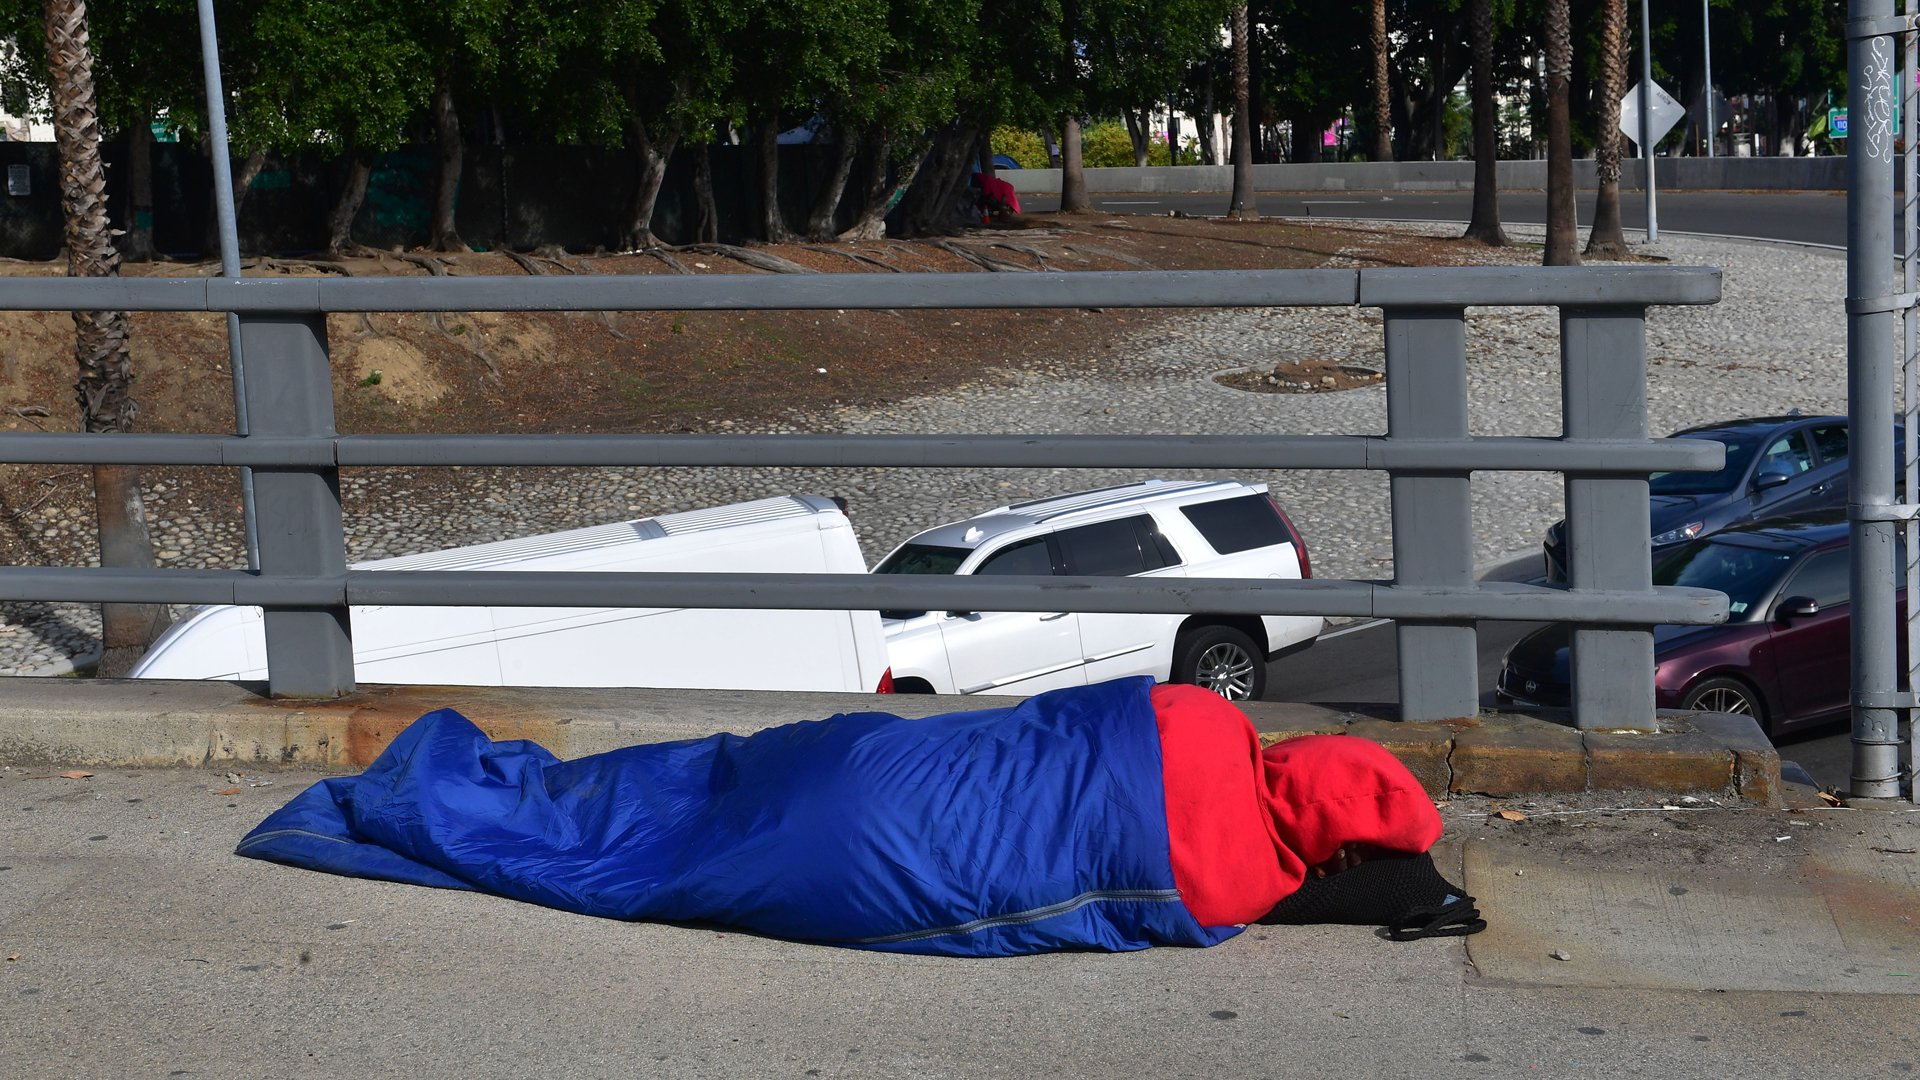 A homeless person sleeps on the street in Los Angeles on Dec. 17, 2019. (Credit: Frederic J. Brown / AFP / Getty Images)